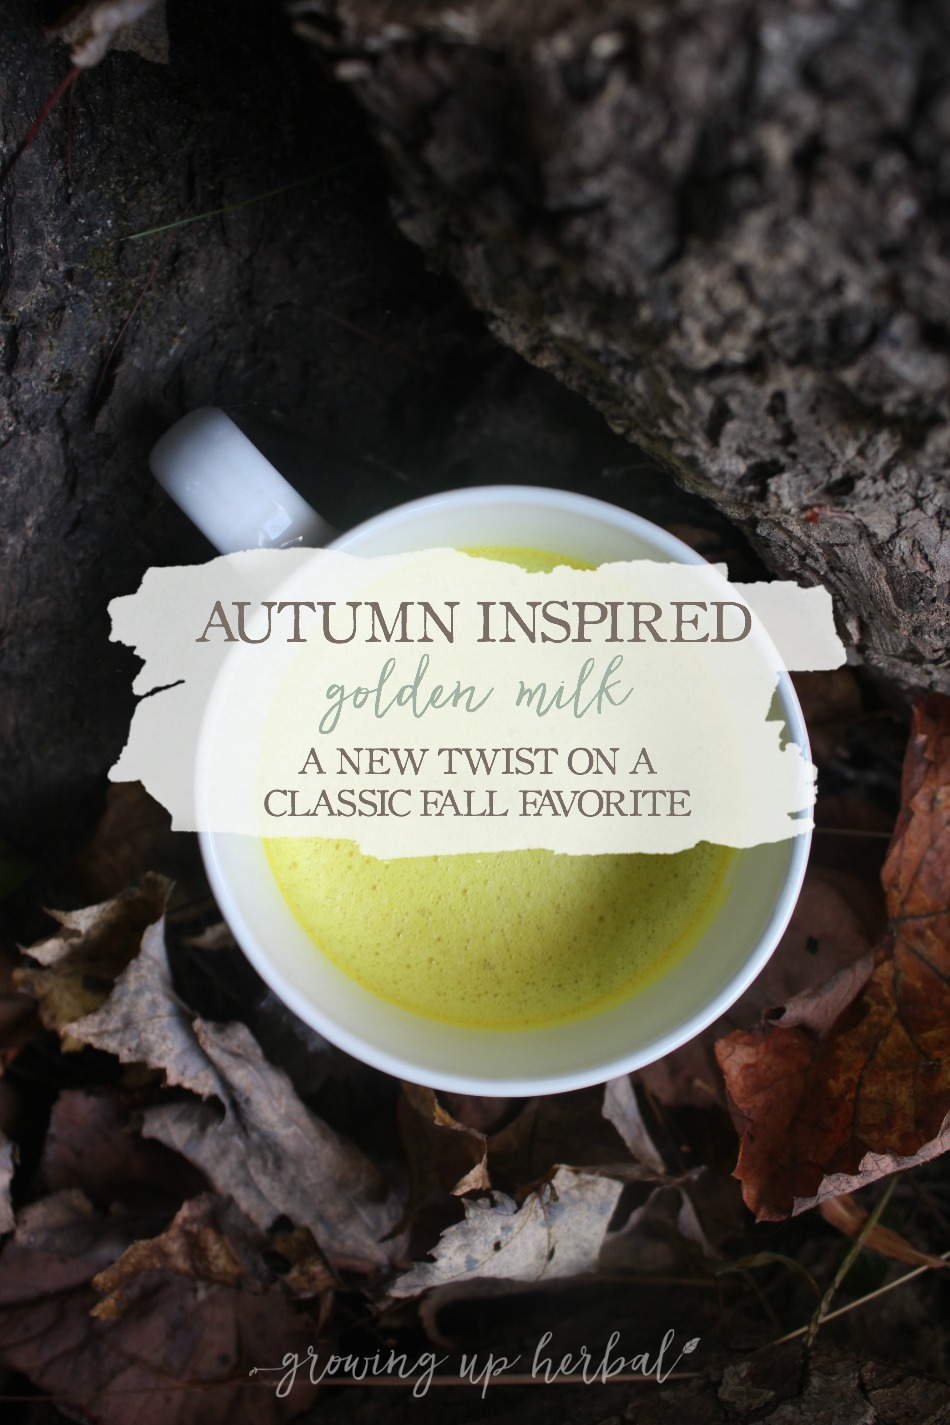 Autumn Inspired Golden Milk: A New Fall Twist On A Classic Favorite | Growing Up Herbal | If you enjoy fall flavors like I do, you will love this delicious autumn inspired golden milk recipe! It's a new twist on a favorite classic recipe.